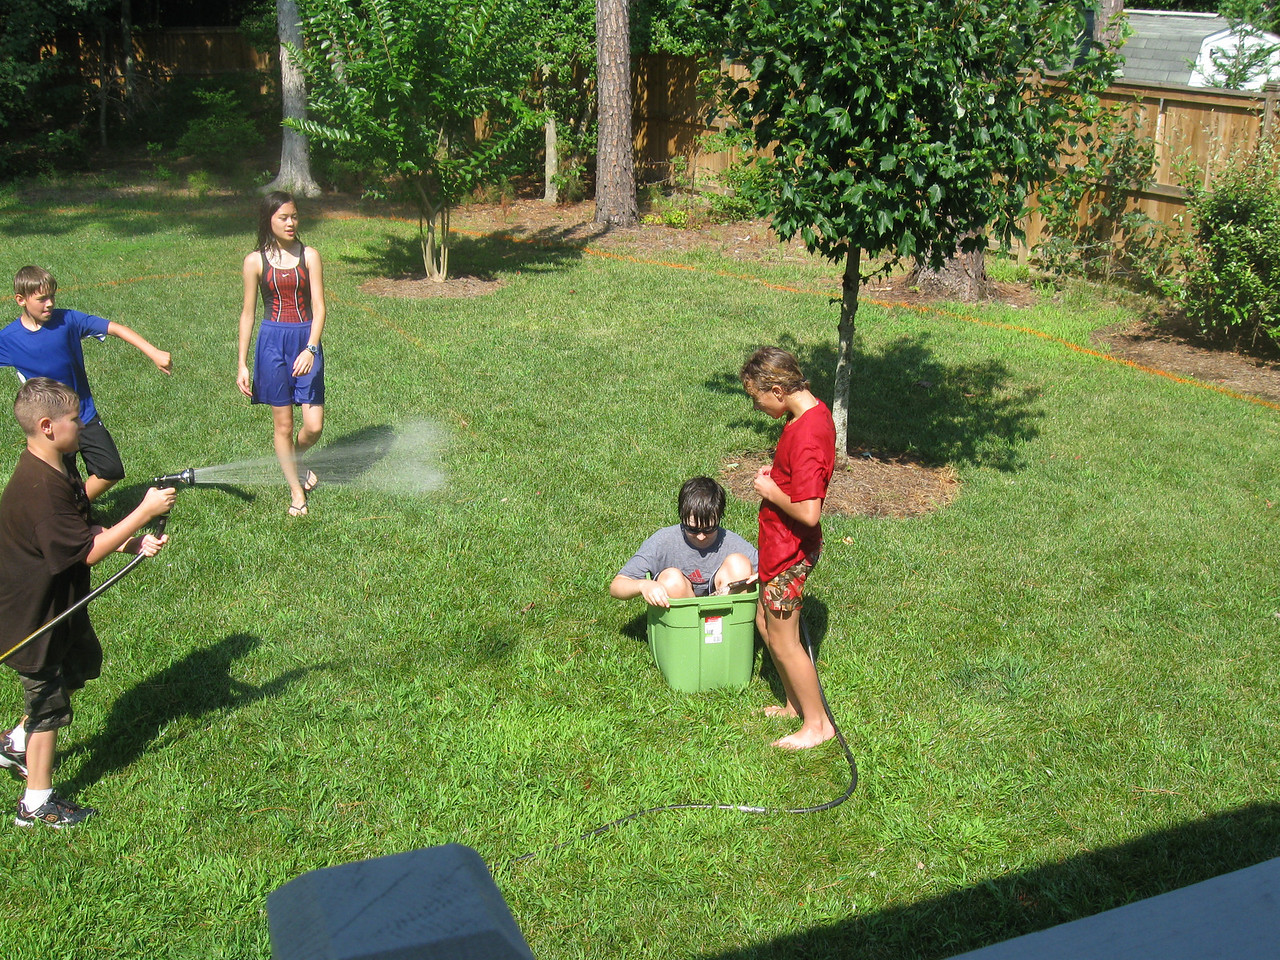 Josh sprays Matt (in tub) while Landry looks on.  Zach is launching a water balloon at Matt while Mandy looks on.